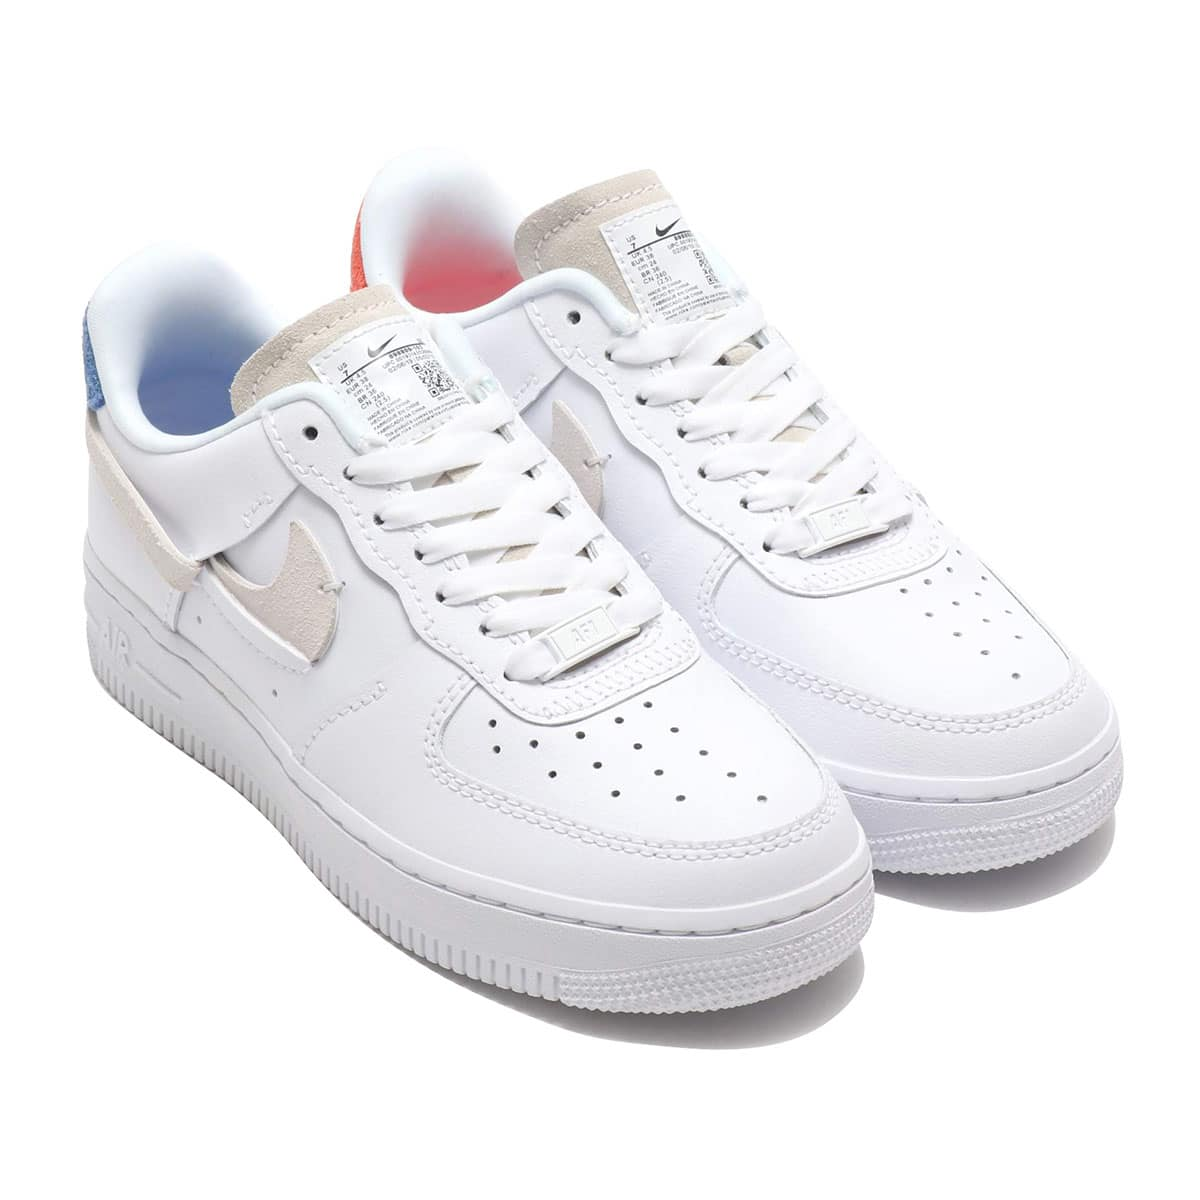 NIKE WMNS AIR FORCE 1 07 LX WHITE/PLATINUM TINT-GAME ROYAL 19FA-S_photo_large